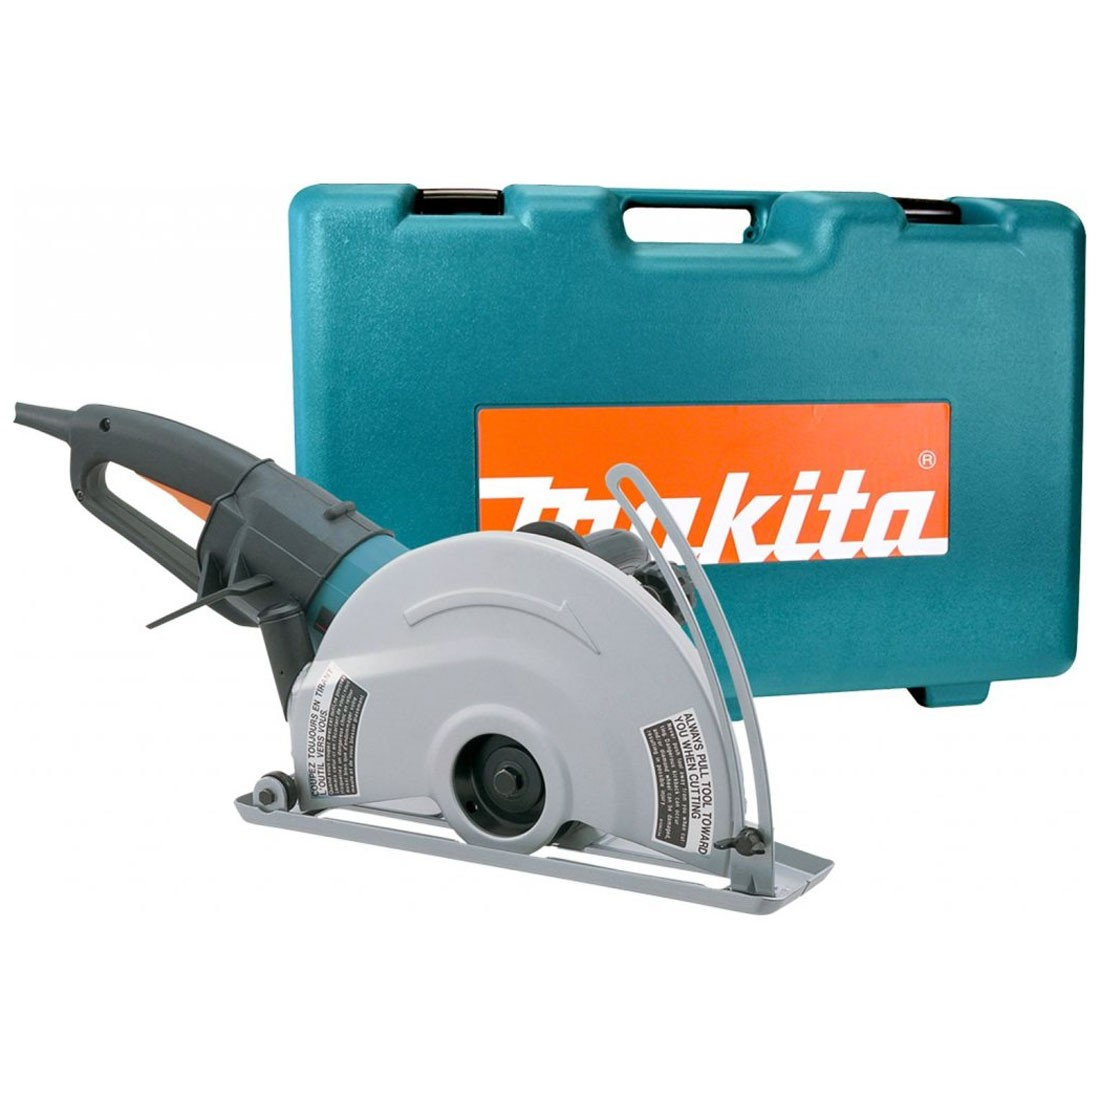 "Makita 4112HS 11.8"" / 300mm Electric Stone Cutter Saw"